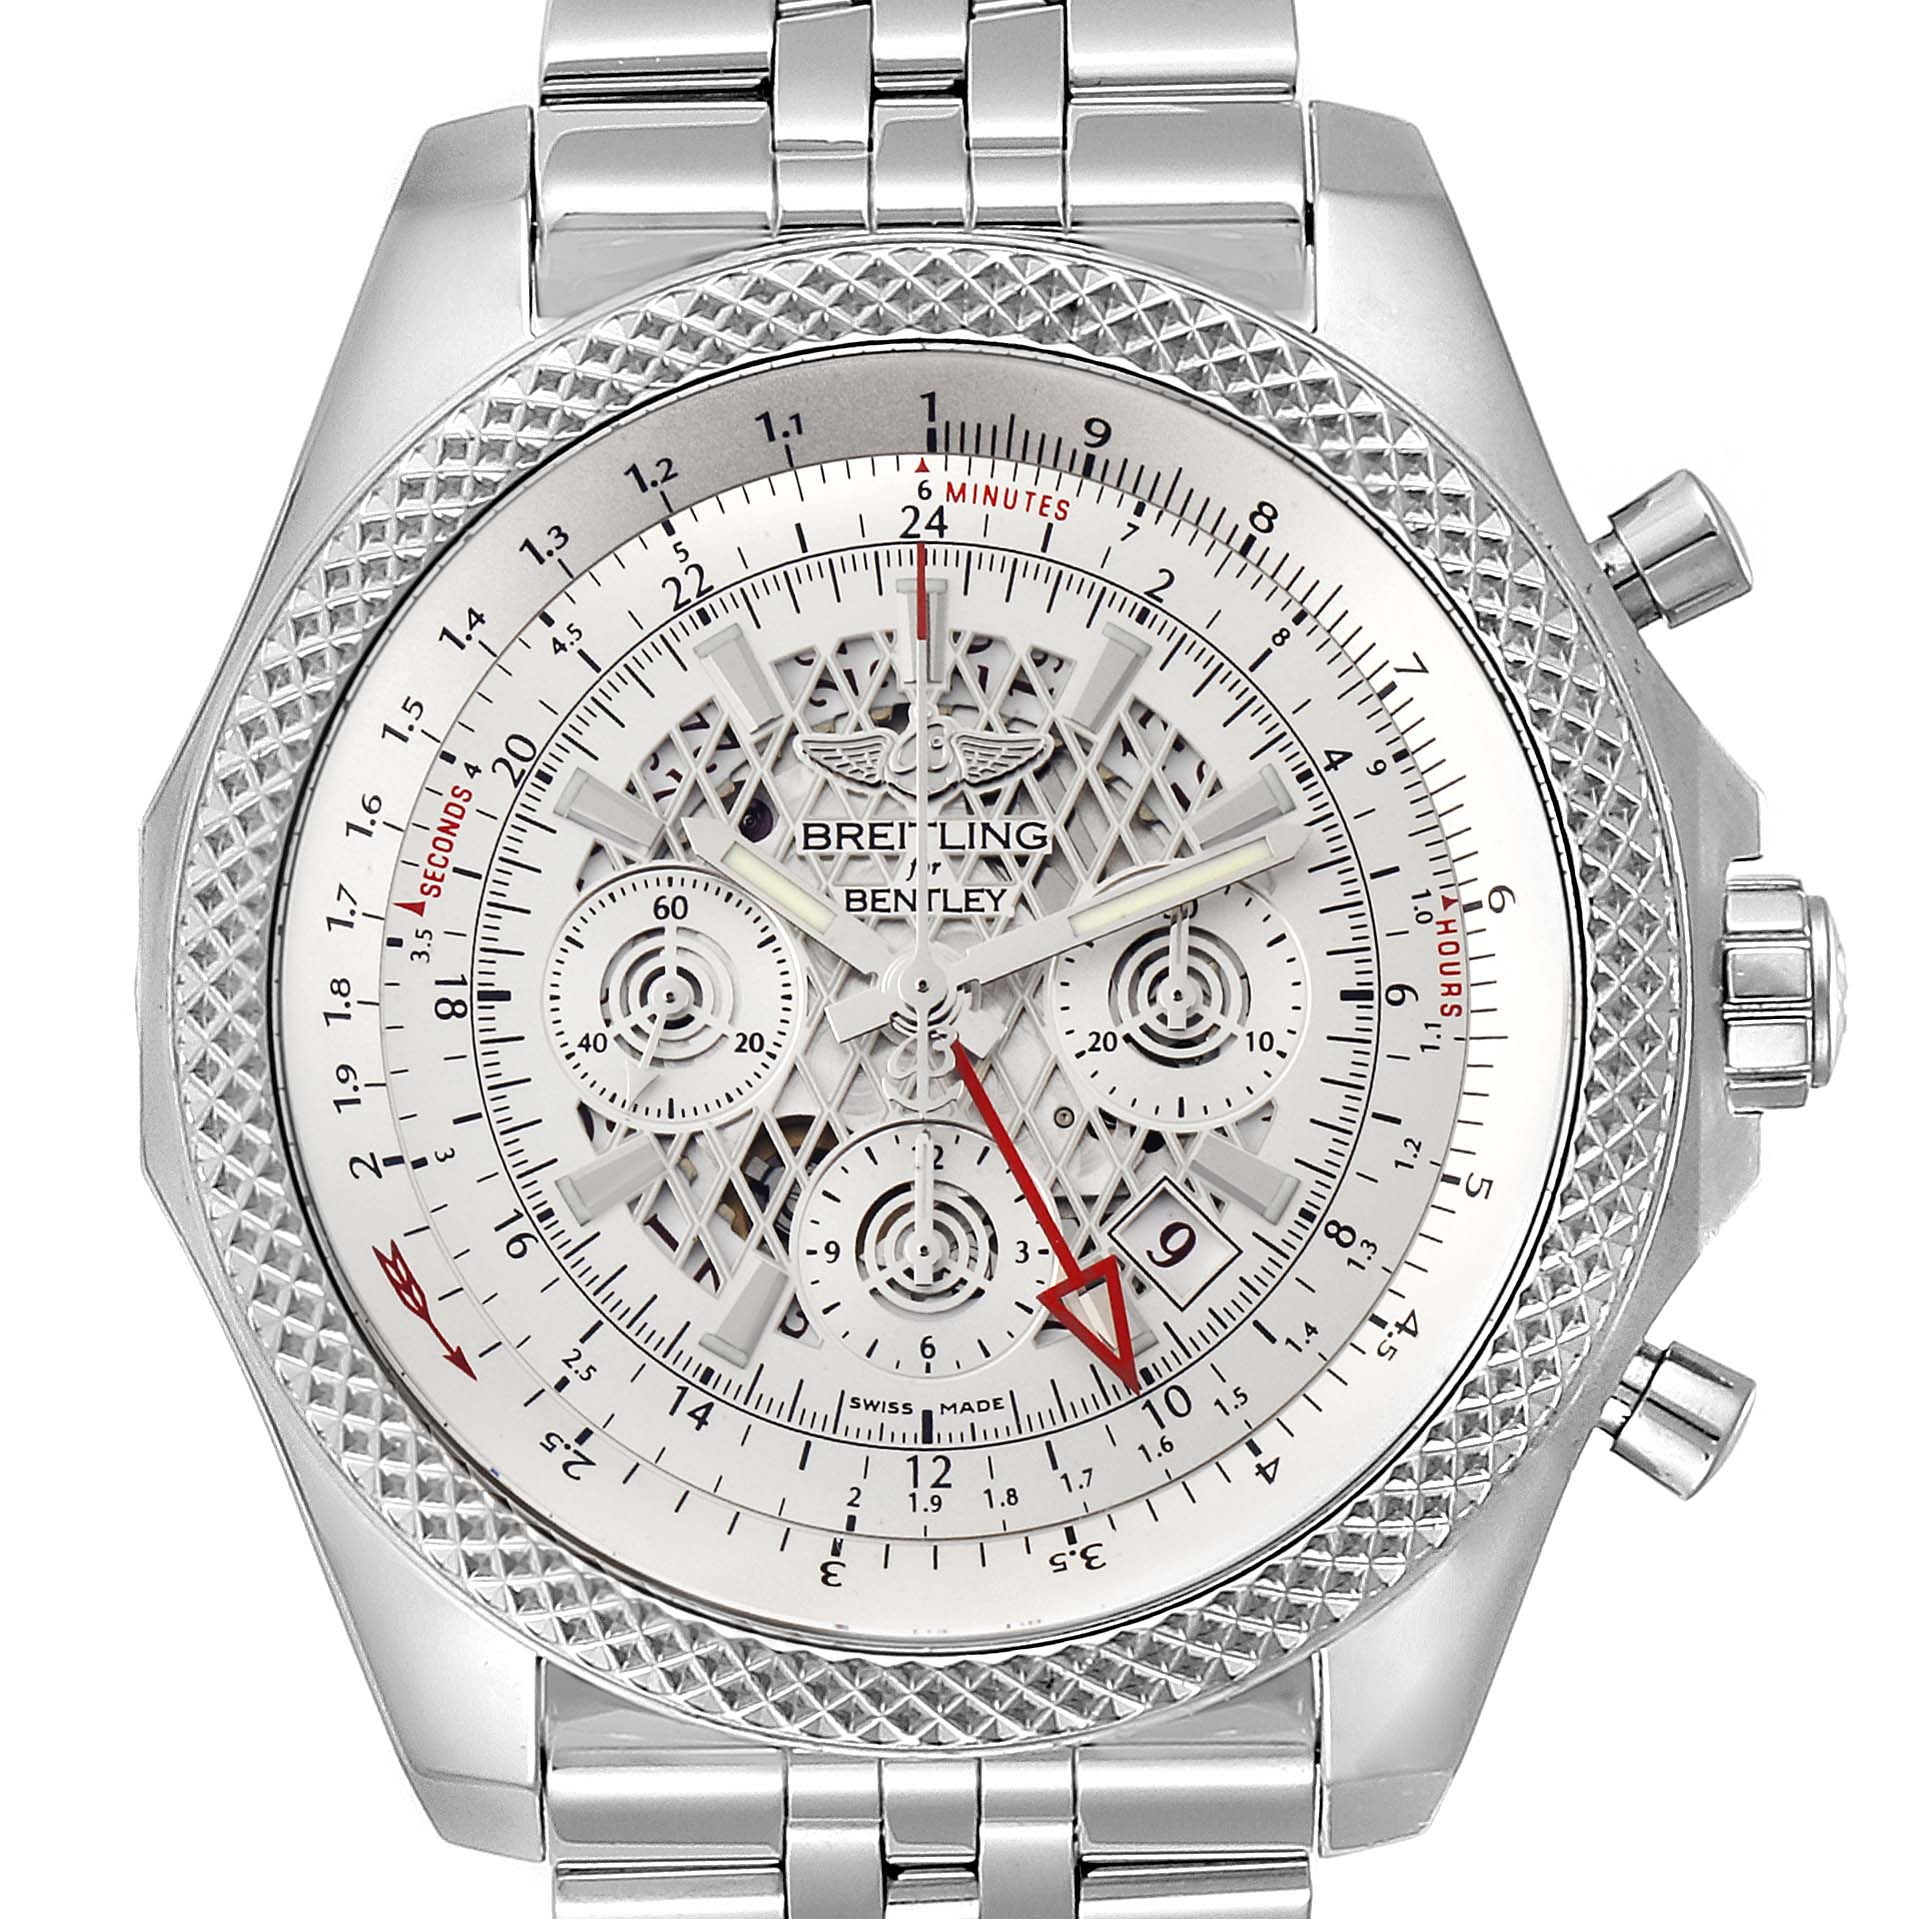 Photo of Breitling Bentley GMT Chronograph Silver Dial Watch AB0431 Box